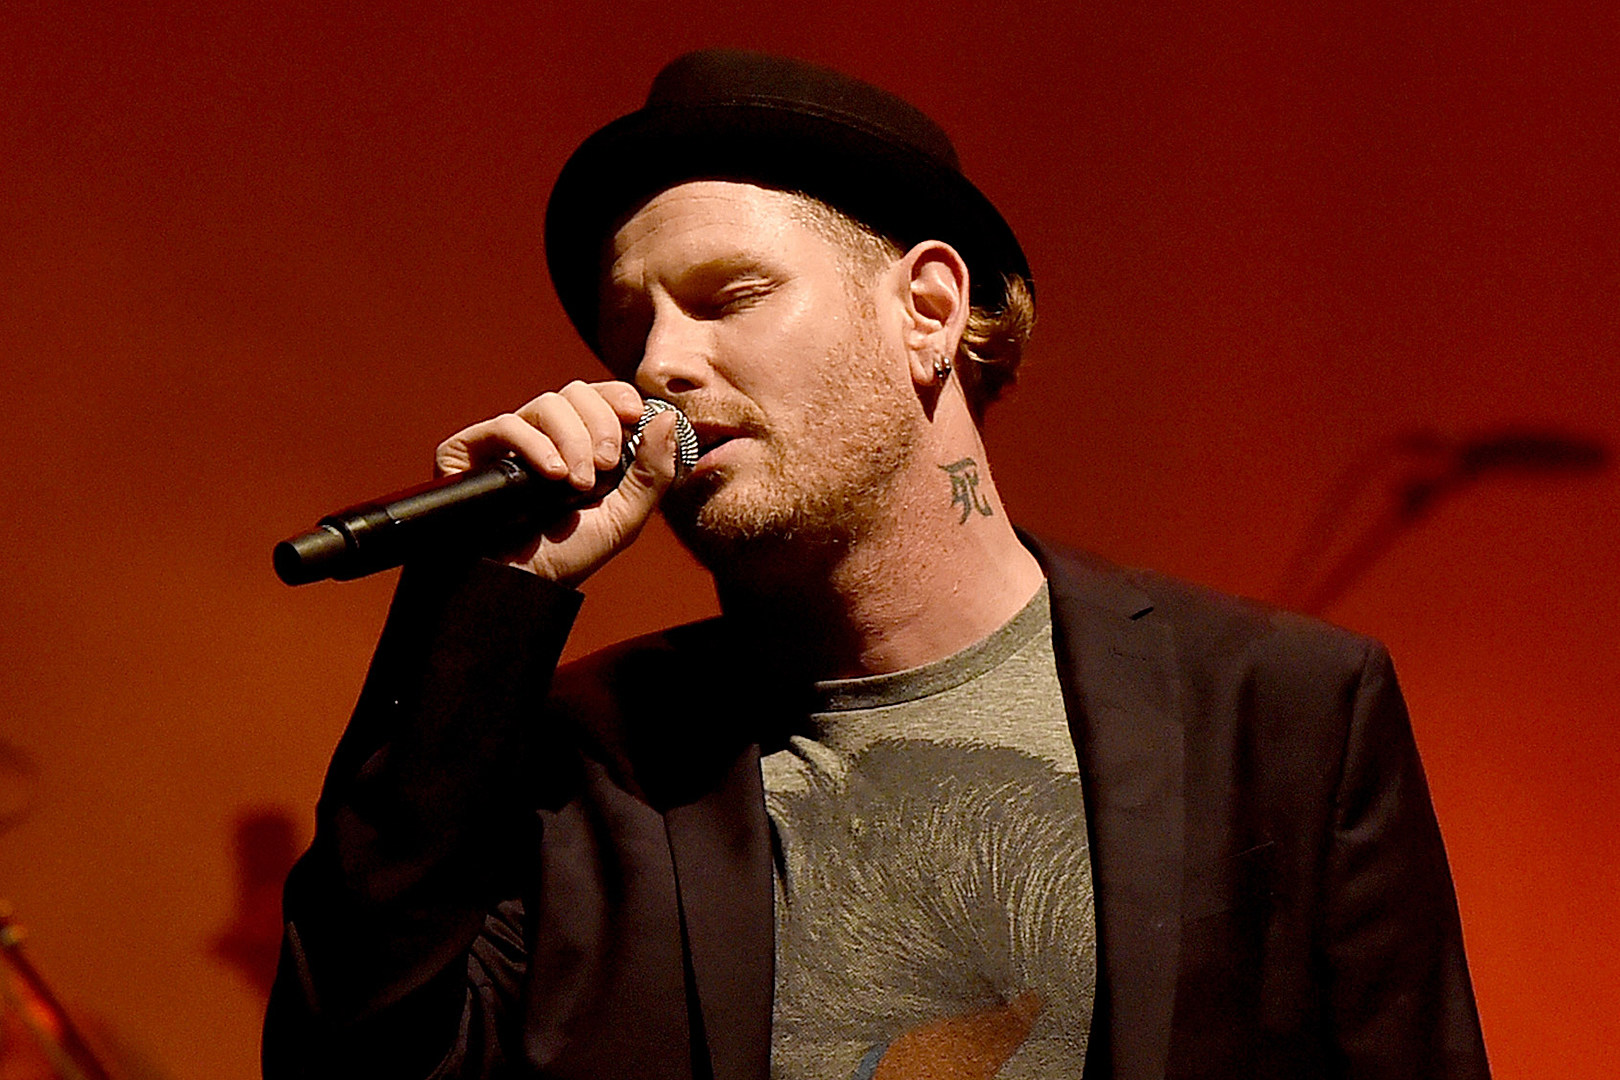 Corey Taylor Let Go of Pain Since Writing New Slipknot Album